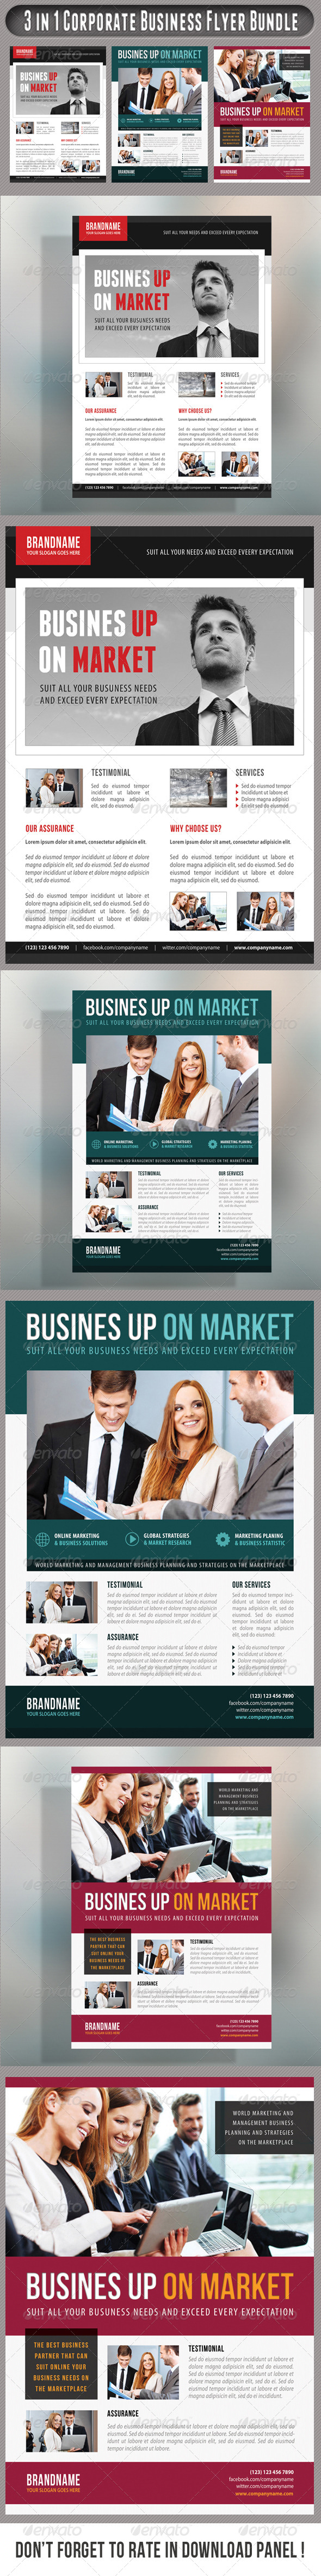 GraphicRiver 3 in 1 Corporate Flyers Bundle 17 7585143